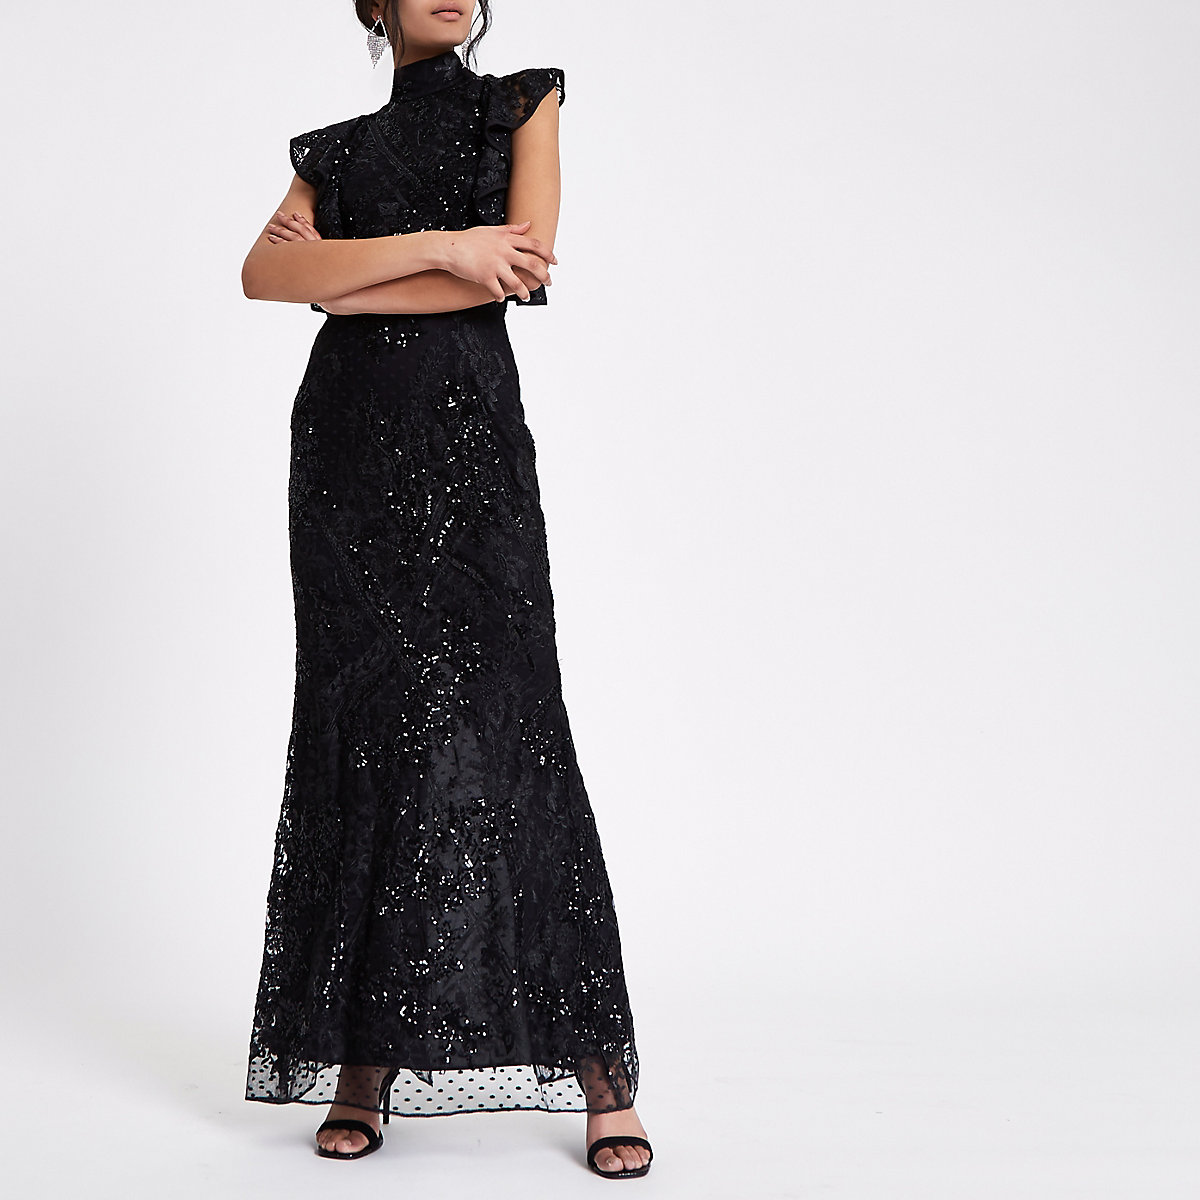 Black sequin embellished maxi dress